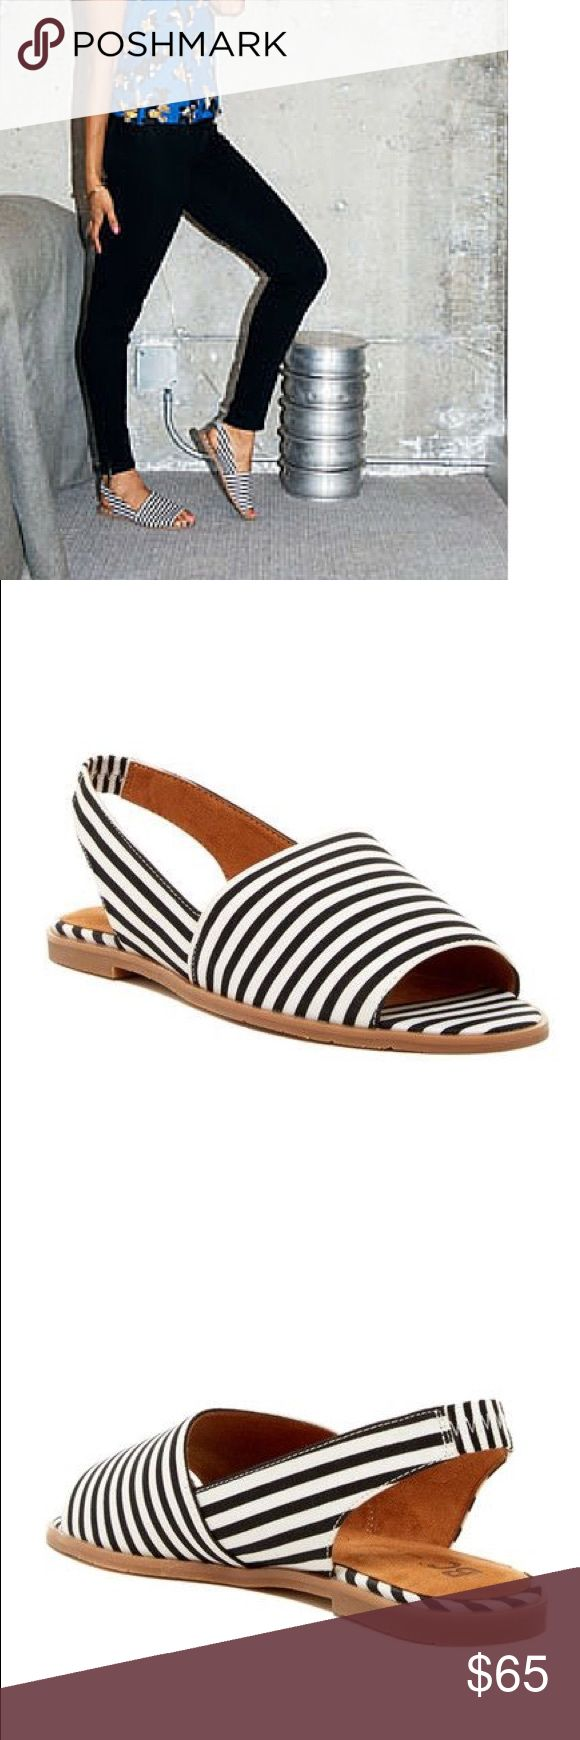 "Slingback Nautical Sandal Upper stripped canvas Color: Black/White Stripe  Measurements: 1"" heel Width: B(M) Urban Outfitters Shoes Flats & Loafers"